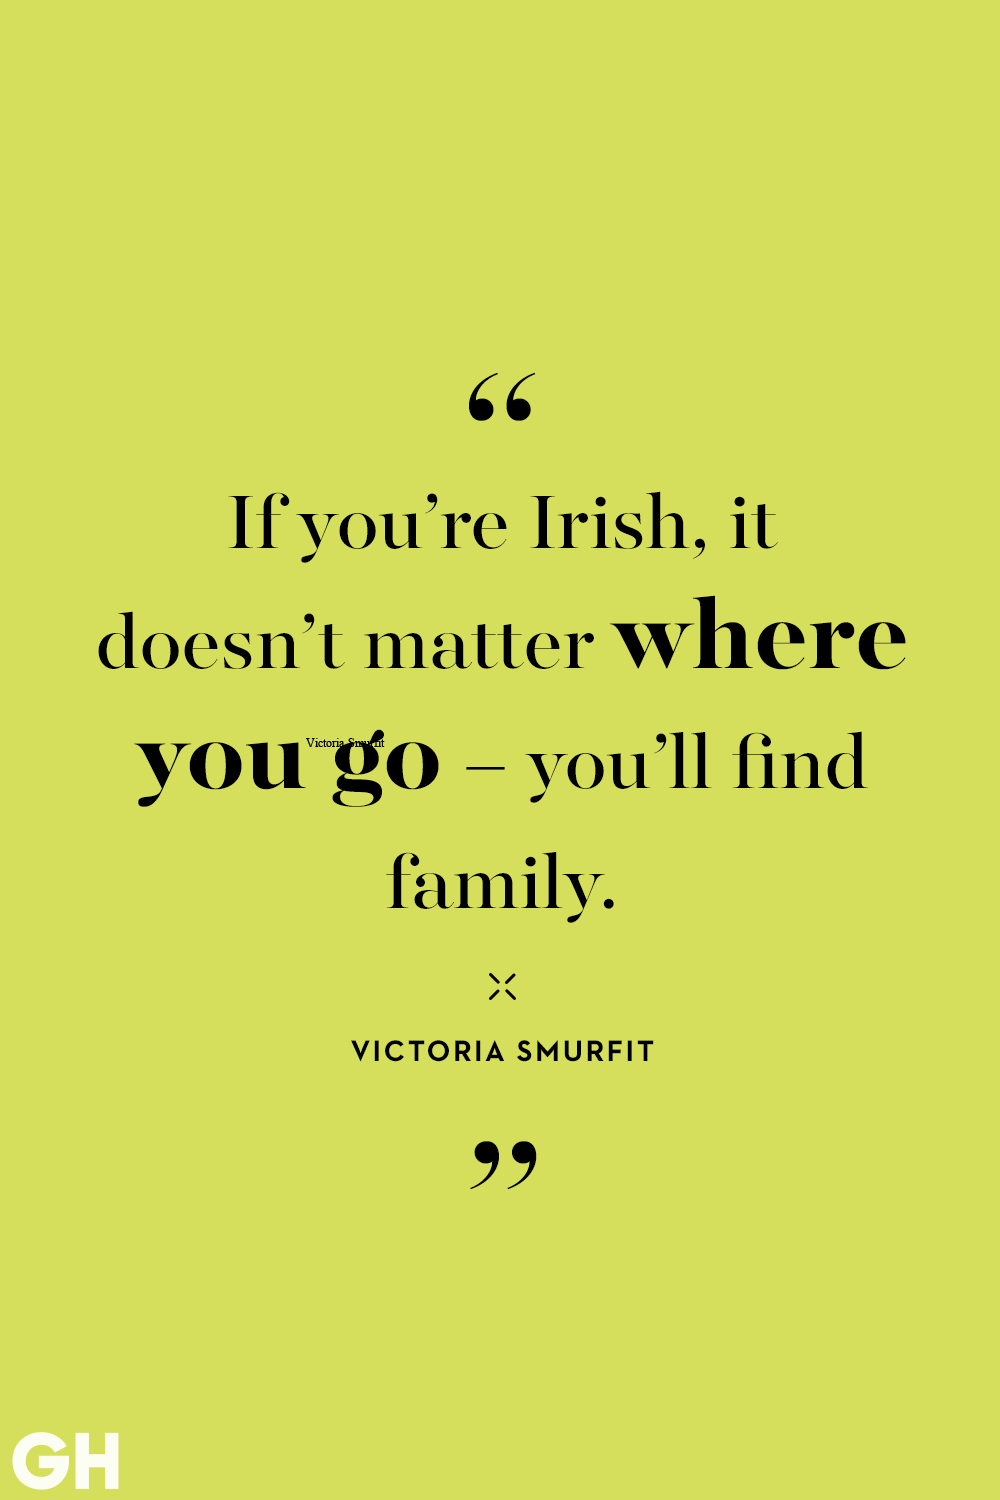 2b7c946fe44db 20 St. Patrick's Day Quotes - Best Irish Sayings for St. Paddy's Day